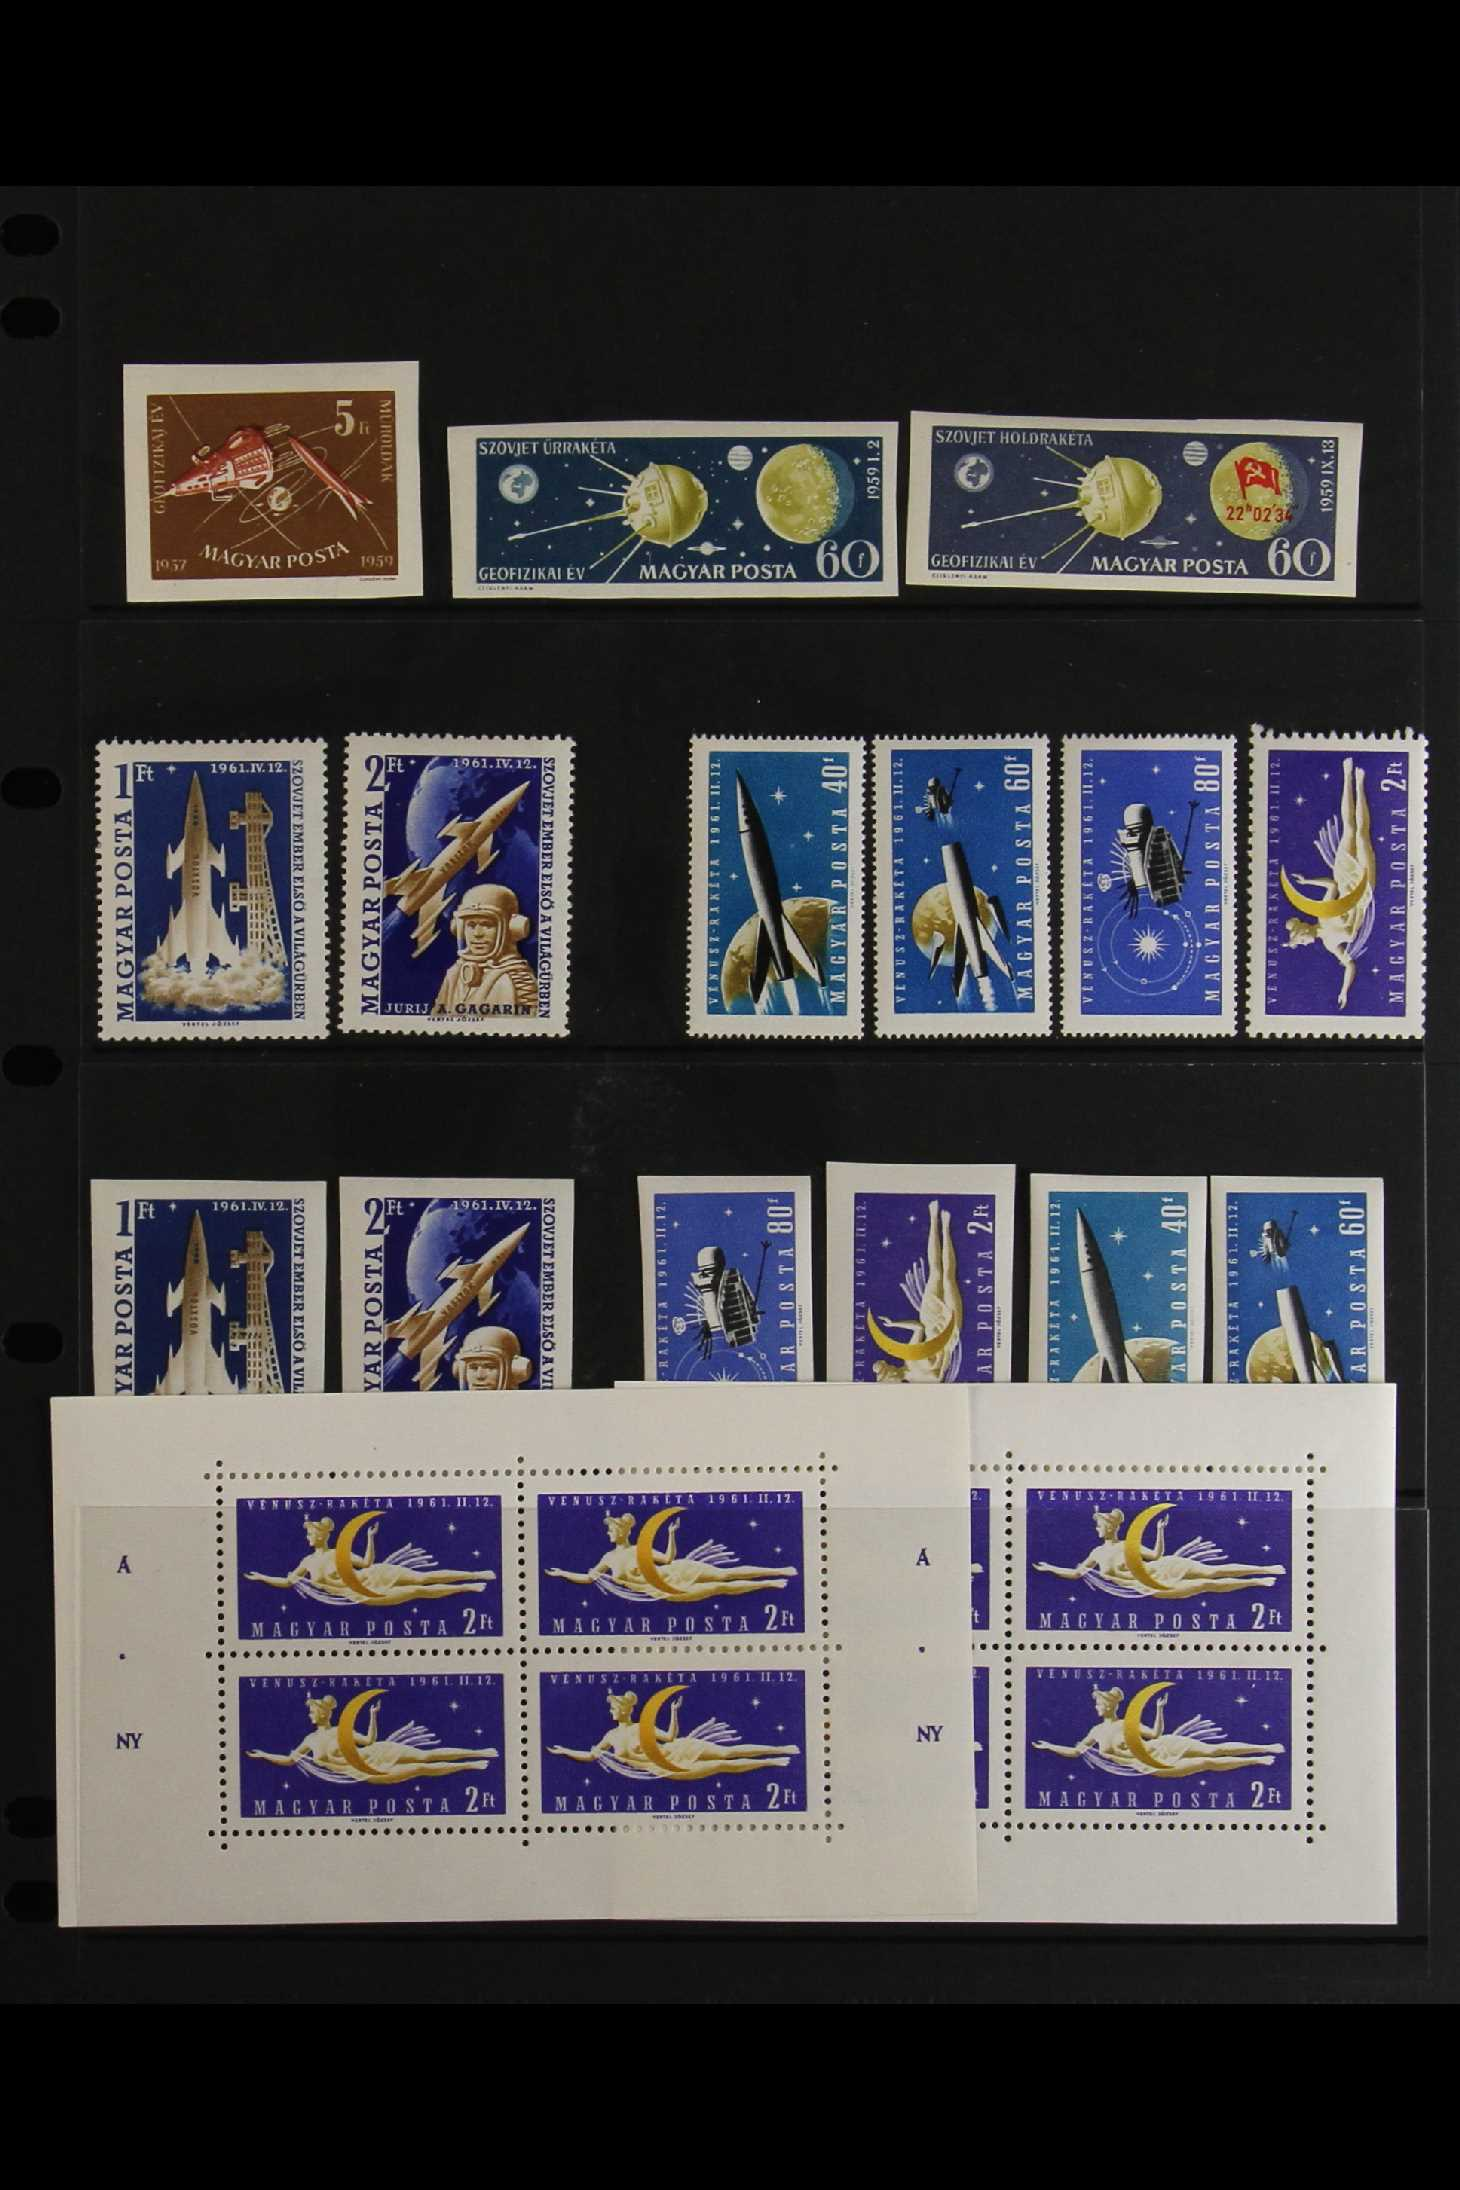 HUNGARY 1959-65 NHM SPACE TOPICAL COLLECTION OF HUNGARY 1959-65 never hinged mint, perf & imperf - Image 4 of 4